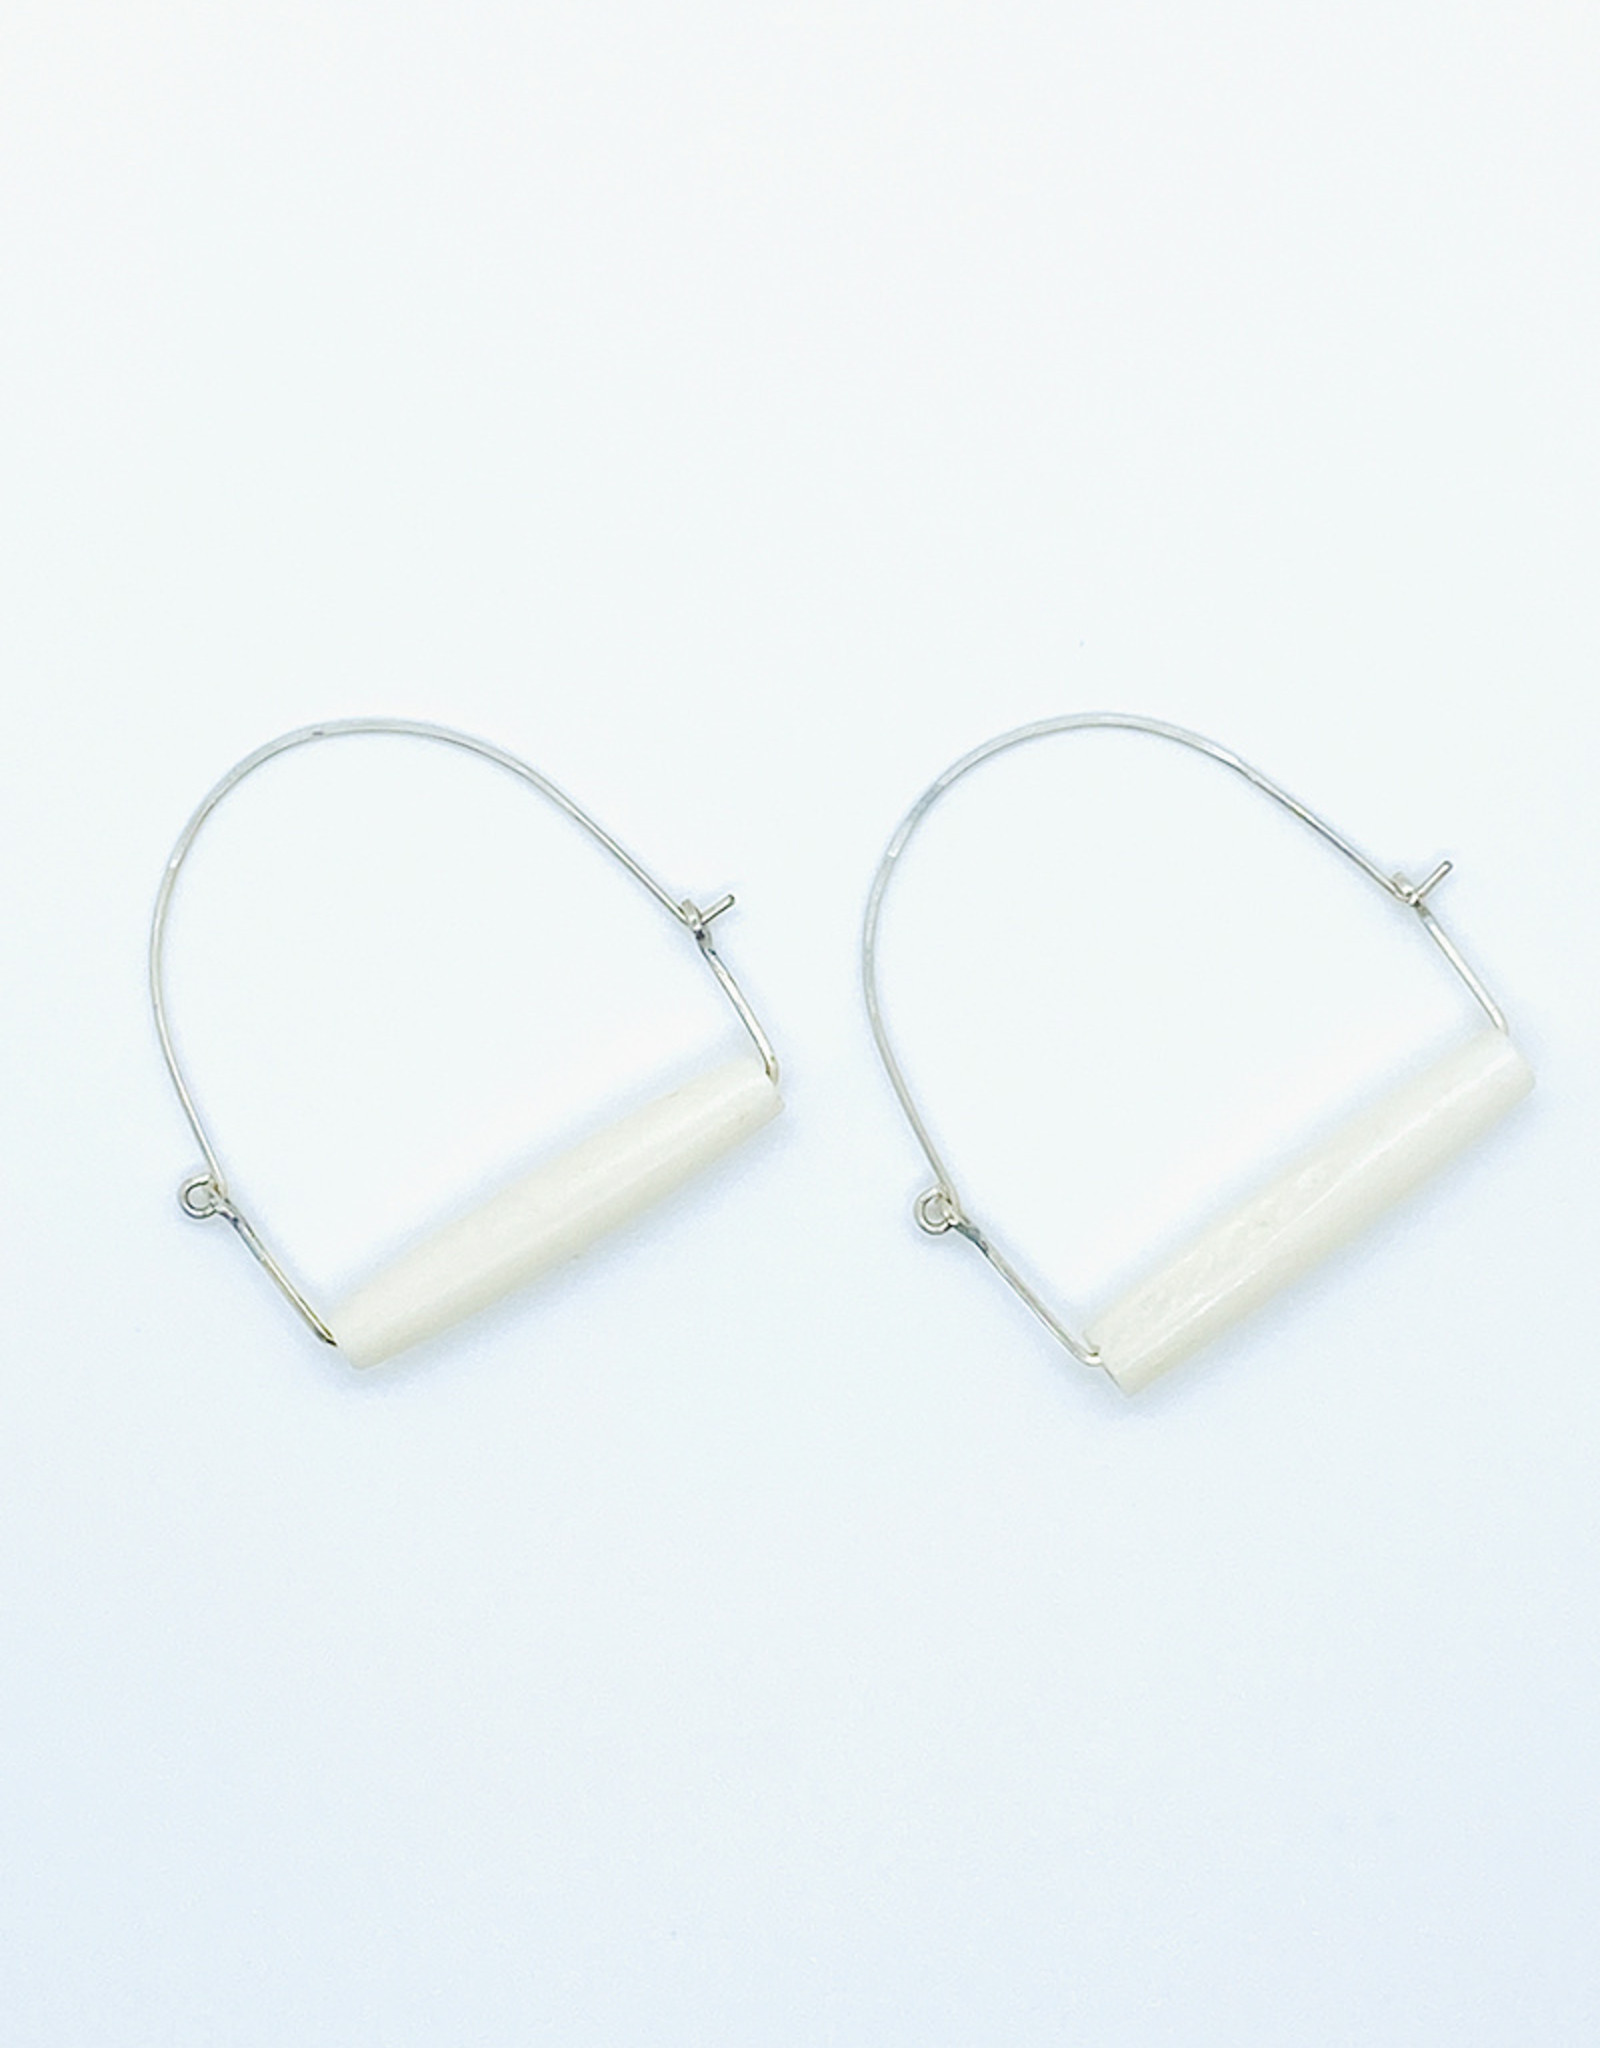 Earth Sign Design Bone + Silver Earrings by Earth Sign Design